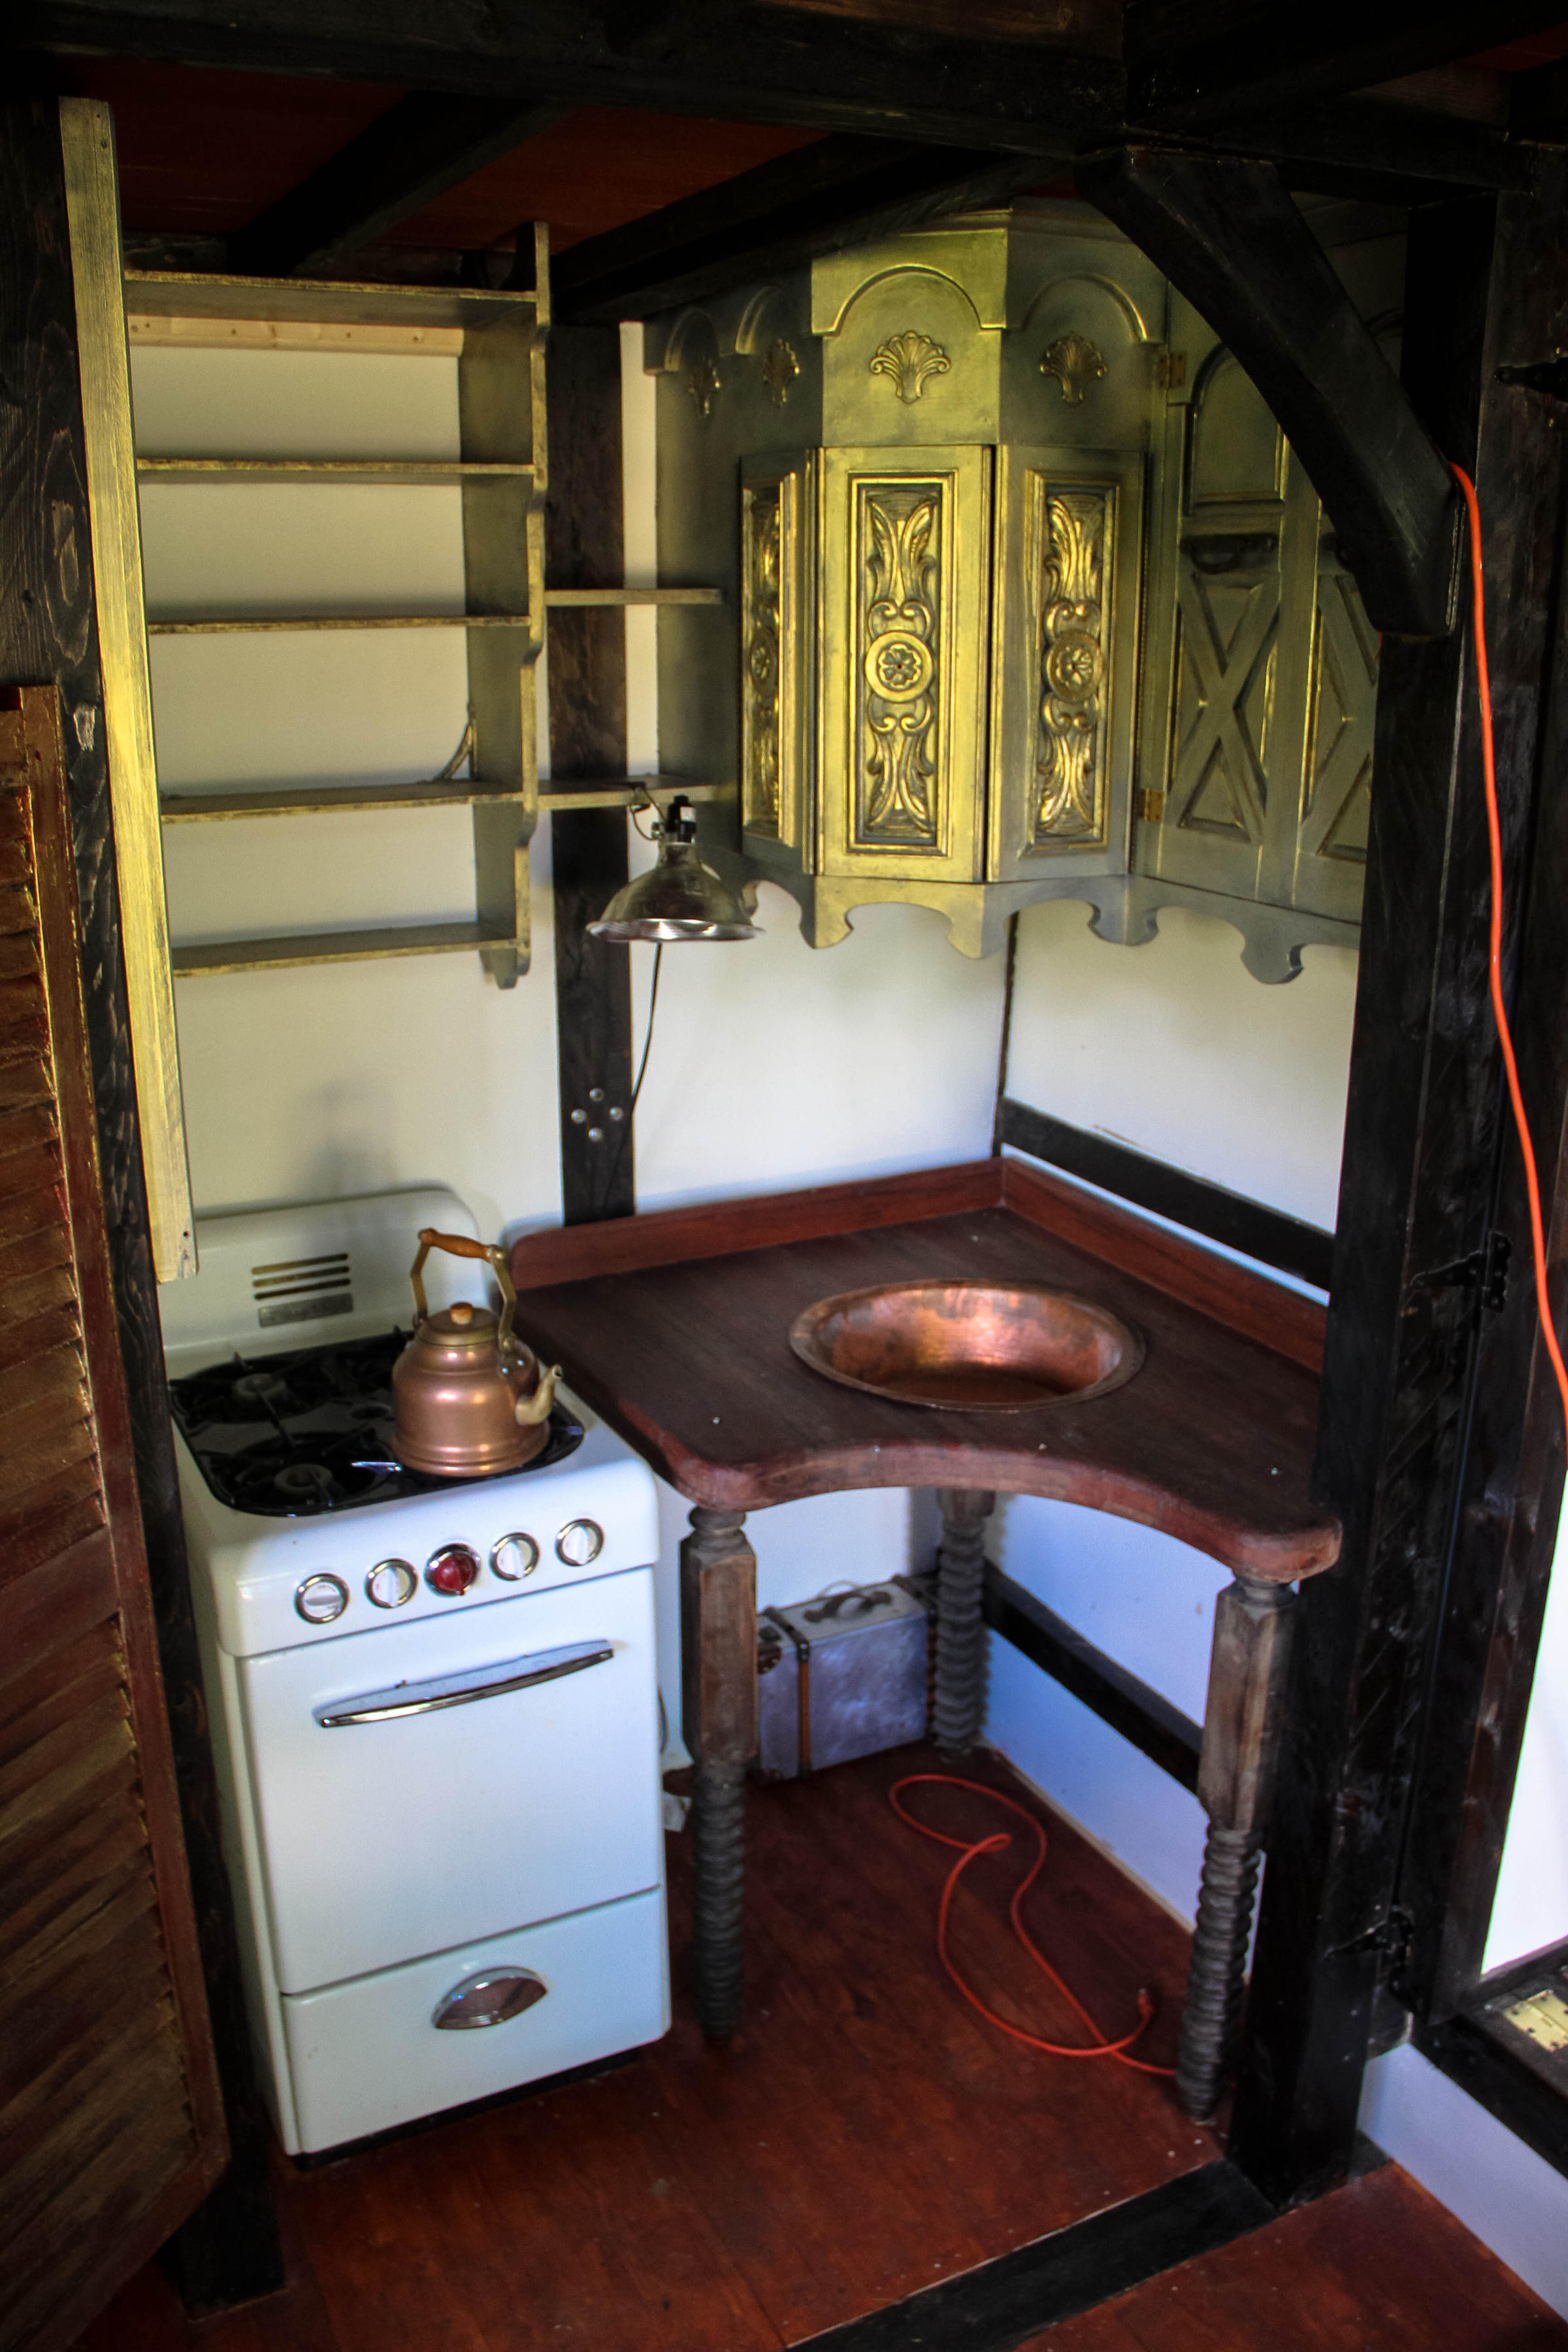 Steampunk Steamer Trunk A Tiny House Contraption on